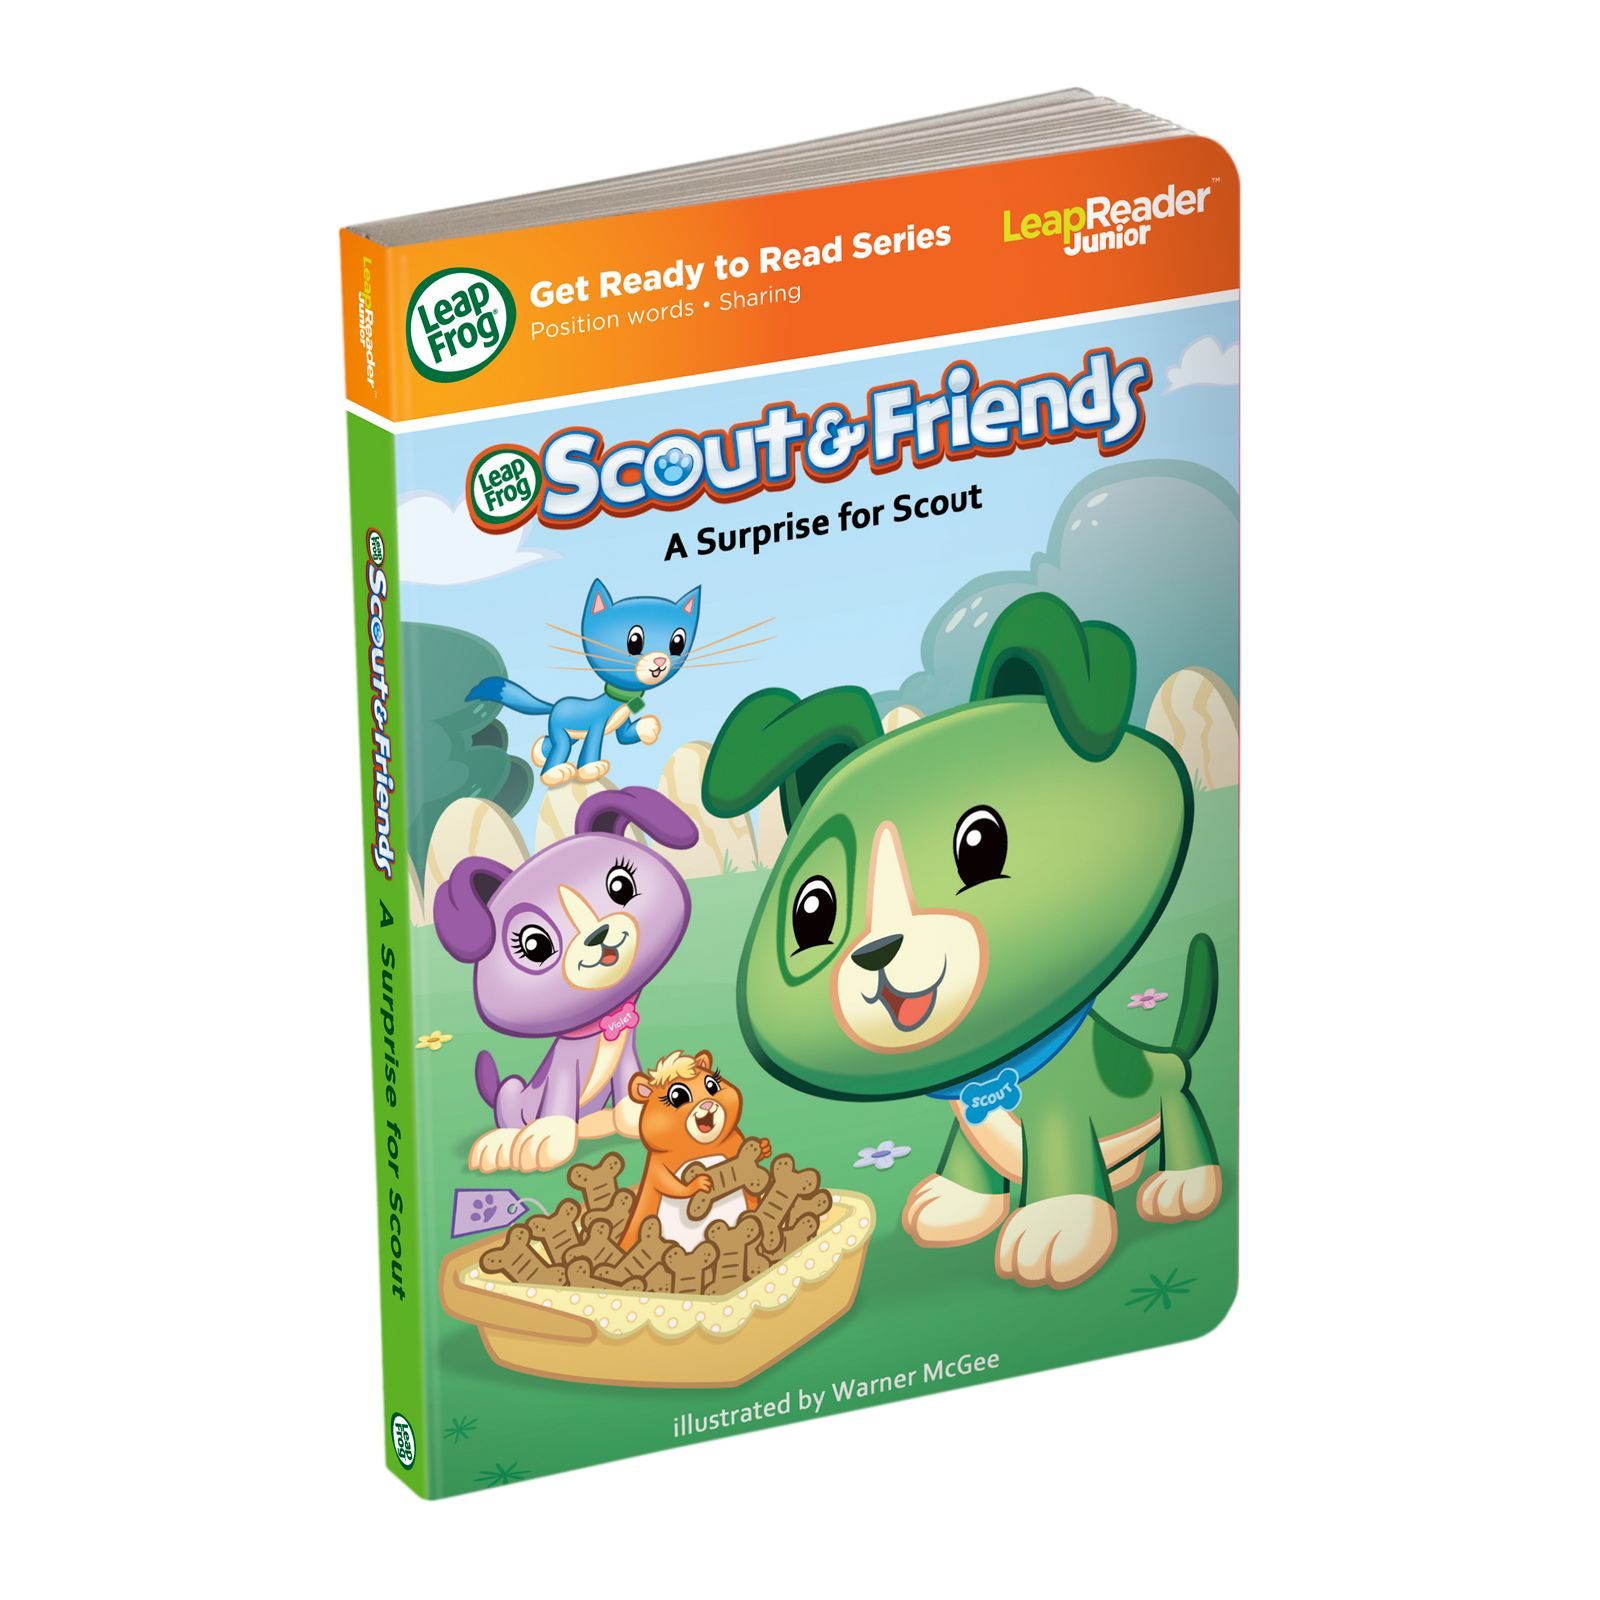 LeapReader Junior Book: Scout & Friends: A